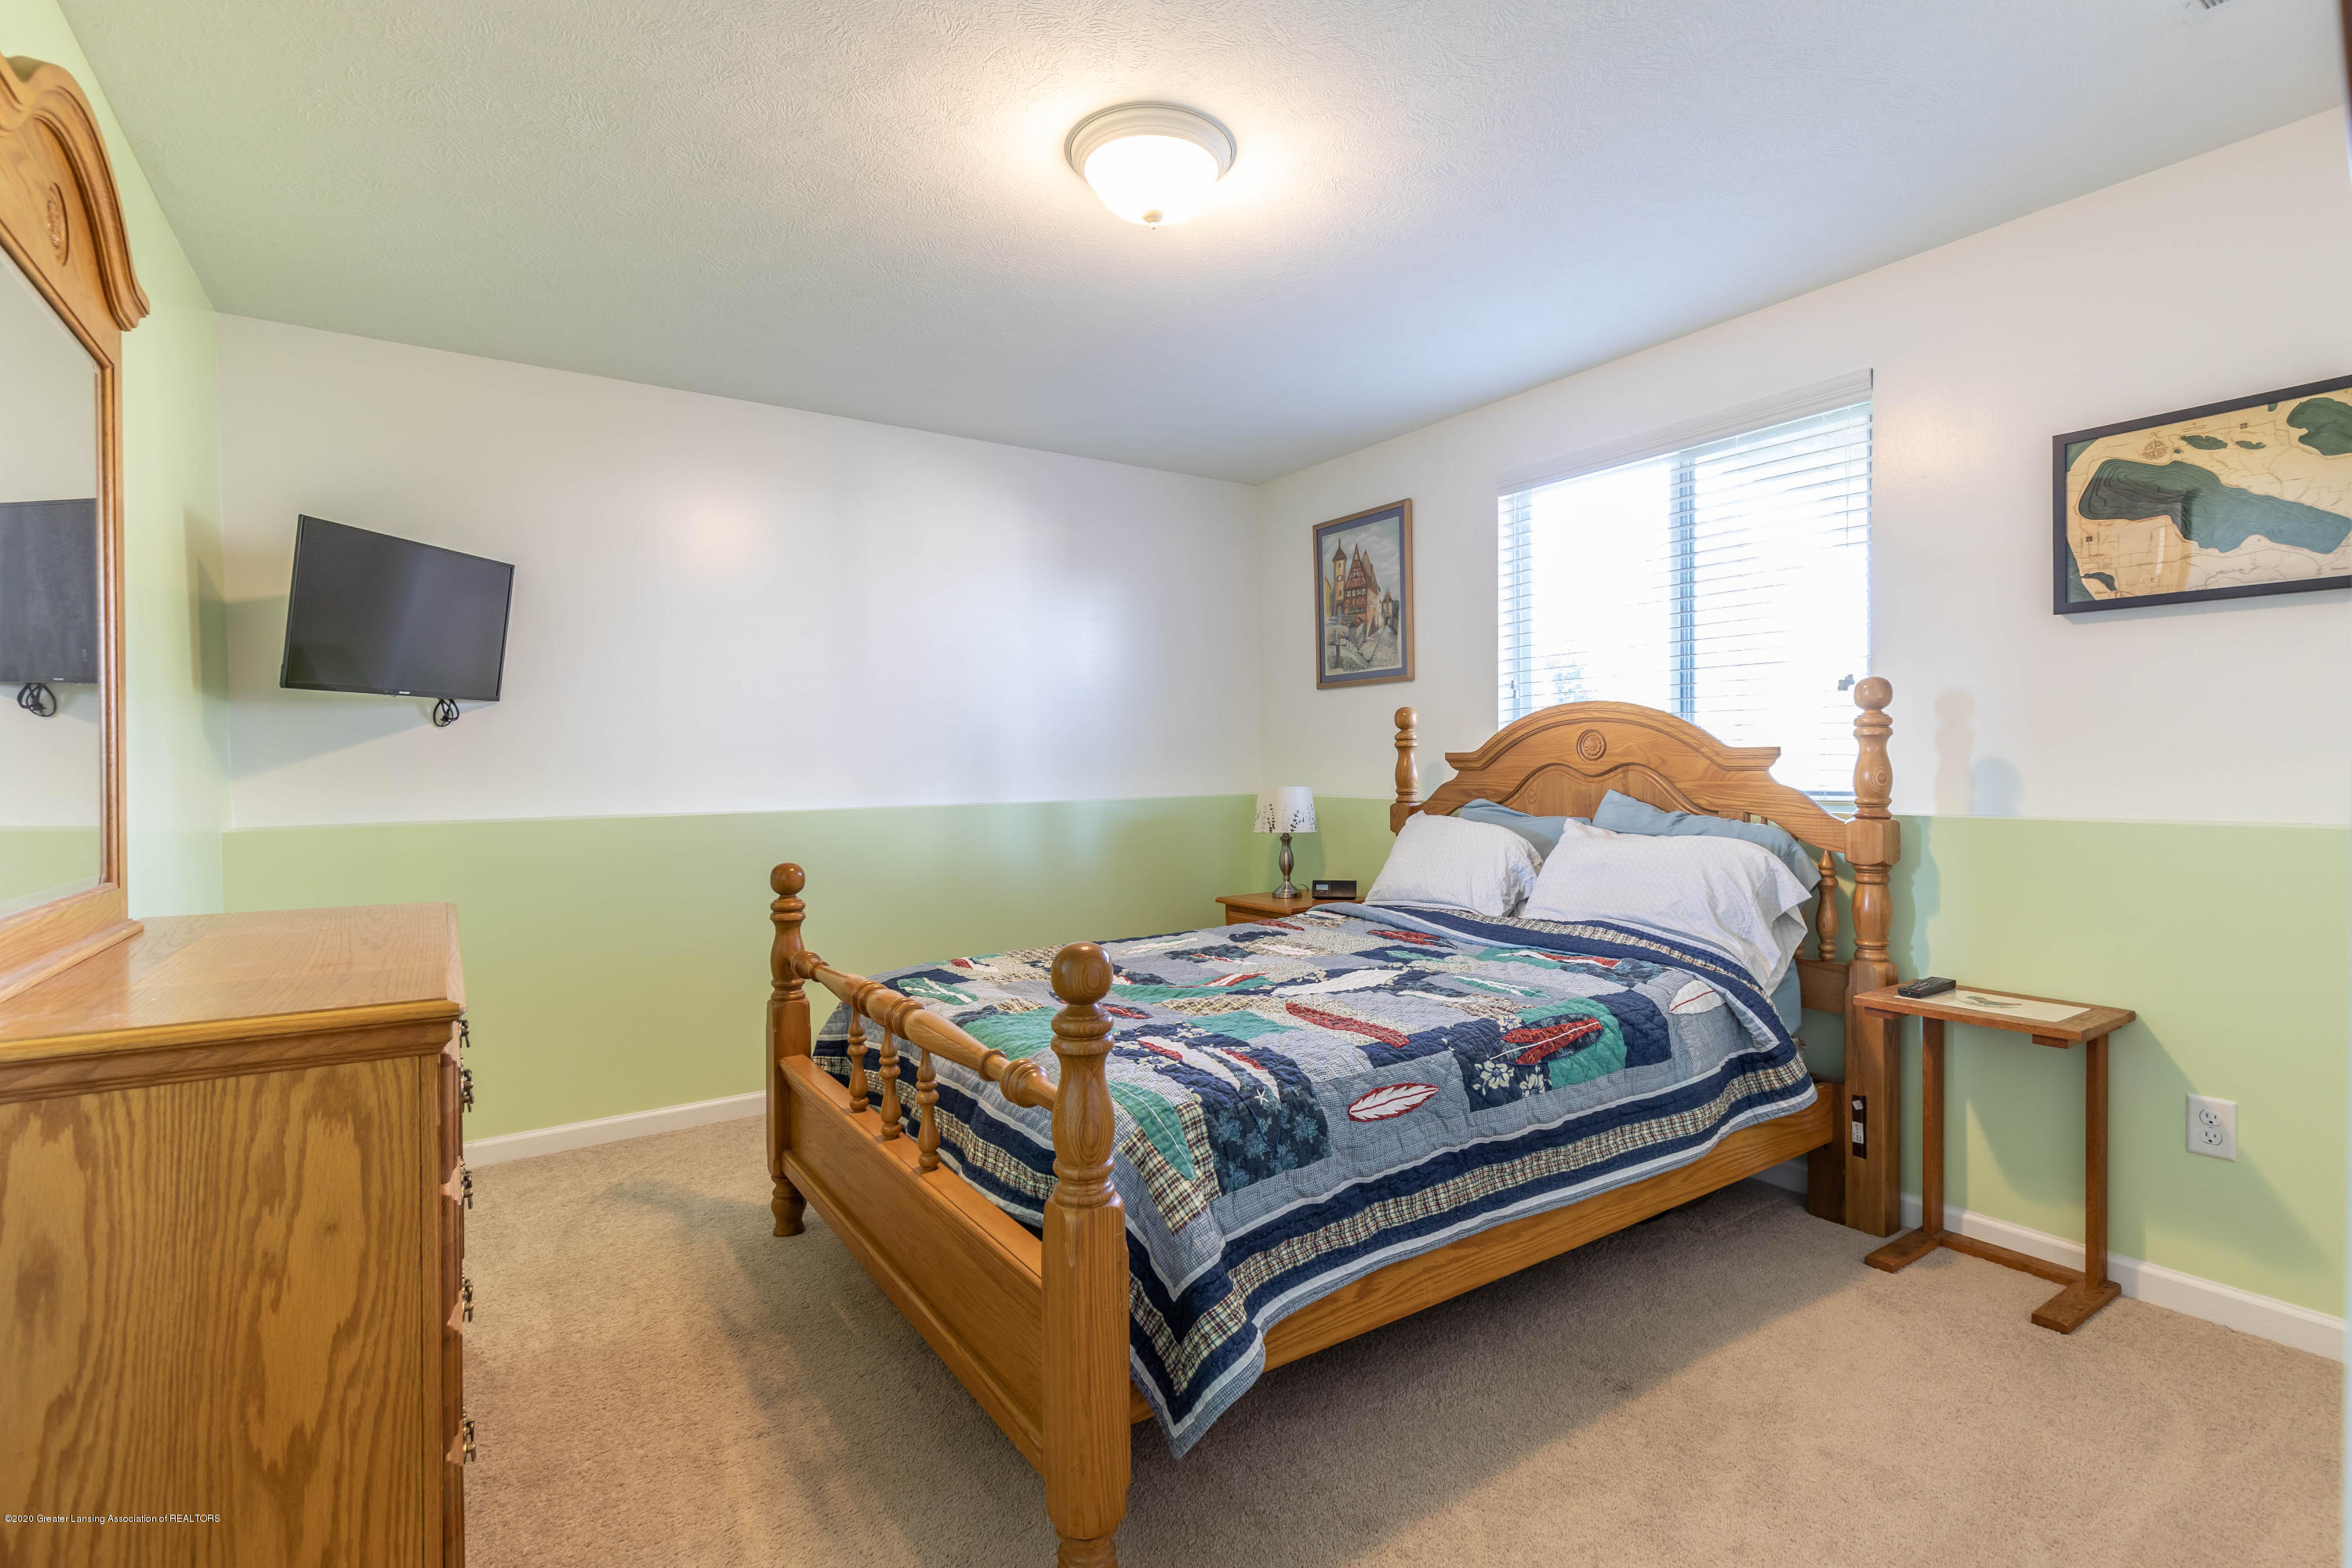 493 Blue Spruce Ln - bluebed31 (1 of 1) - 20